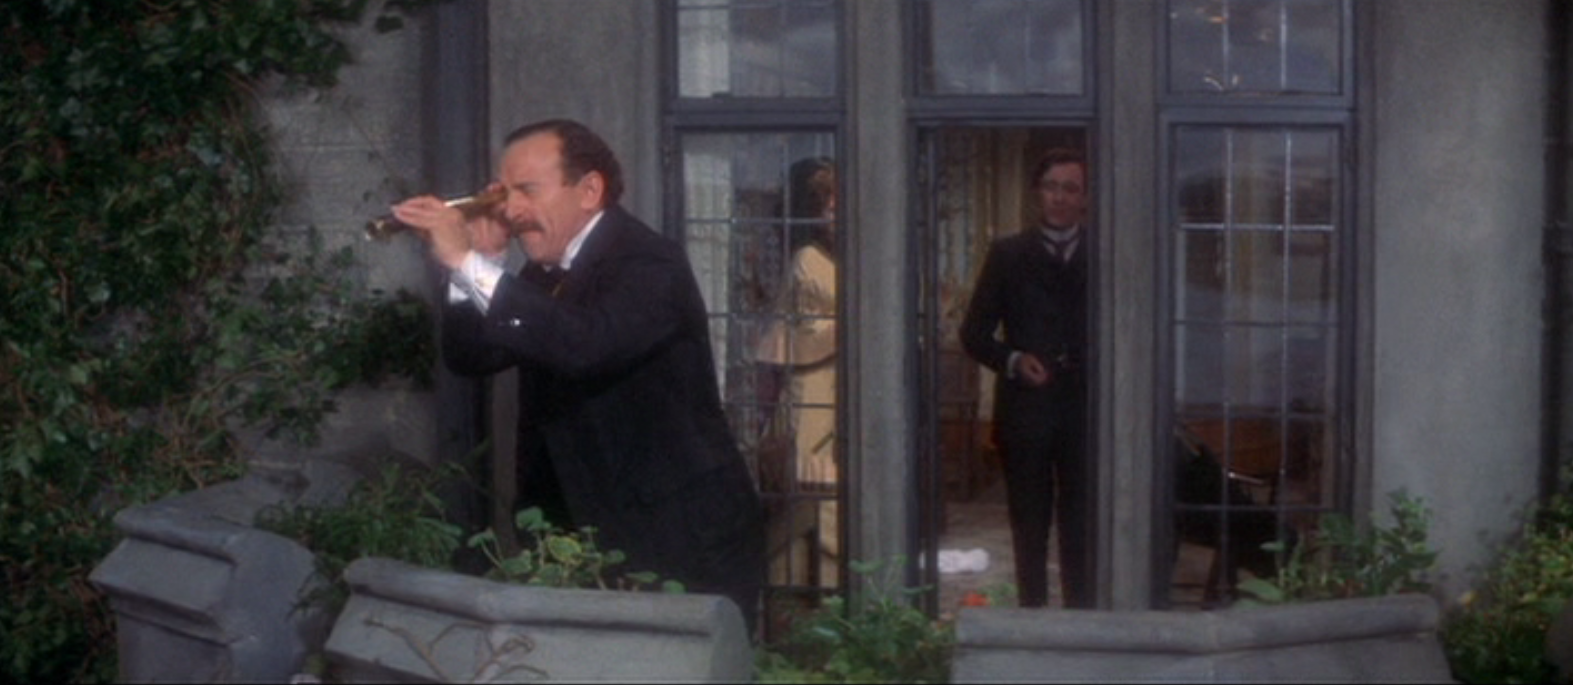 The private life of Sherlock Holmes (Billy Wilder, 1970)